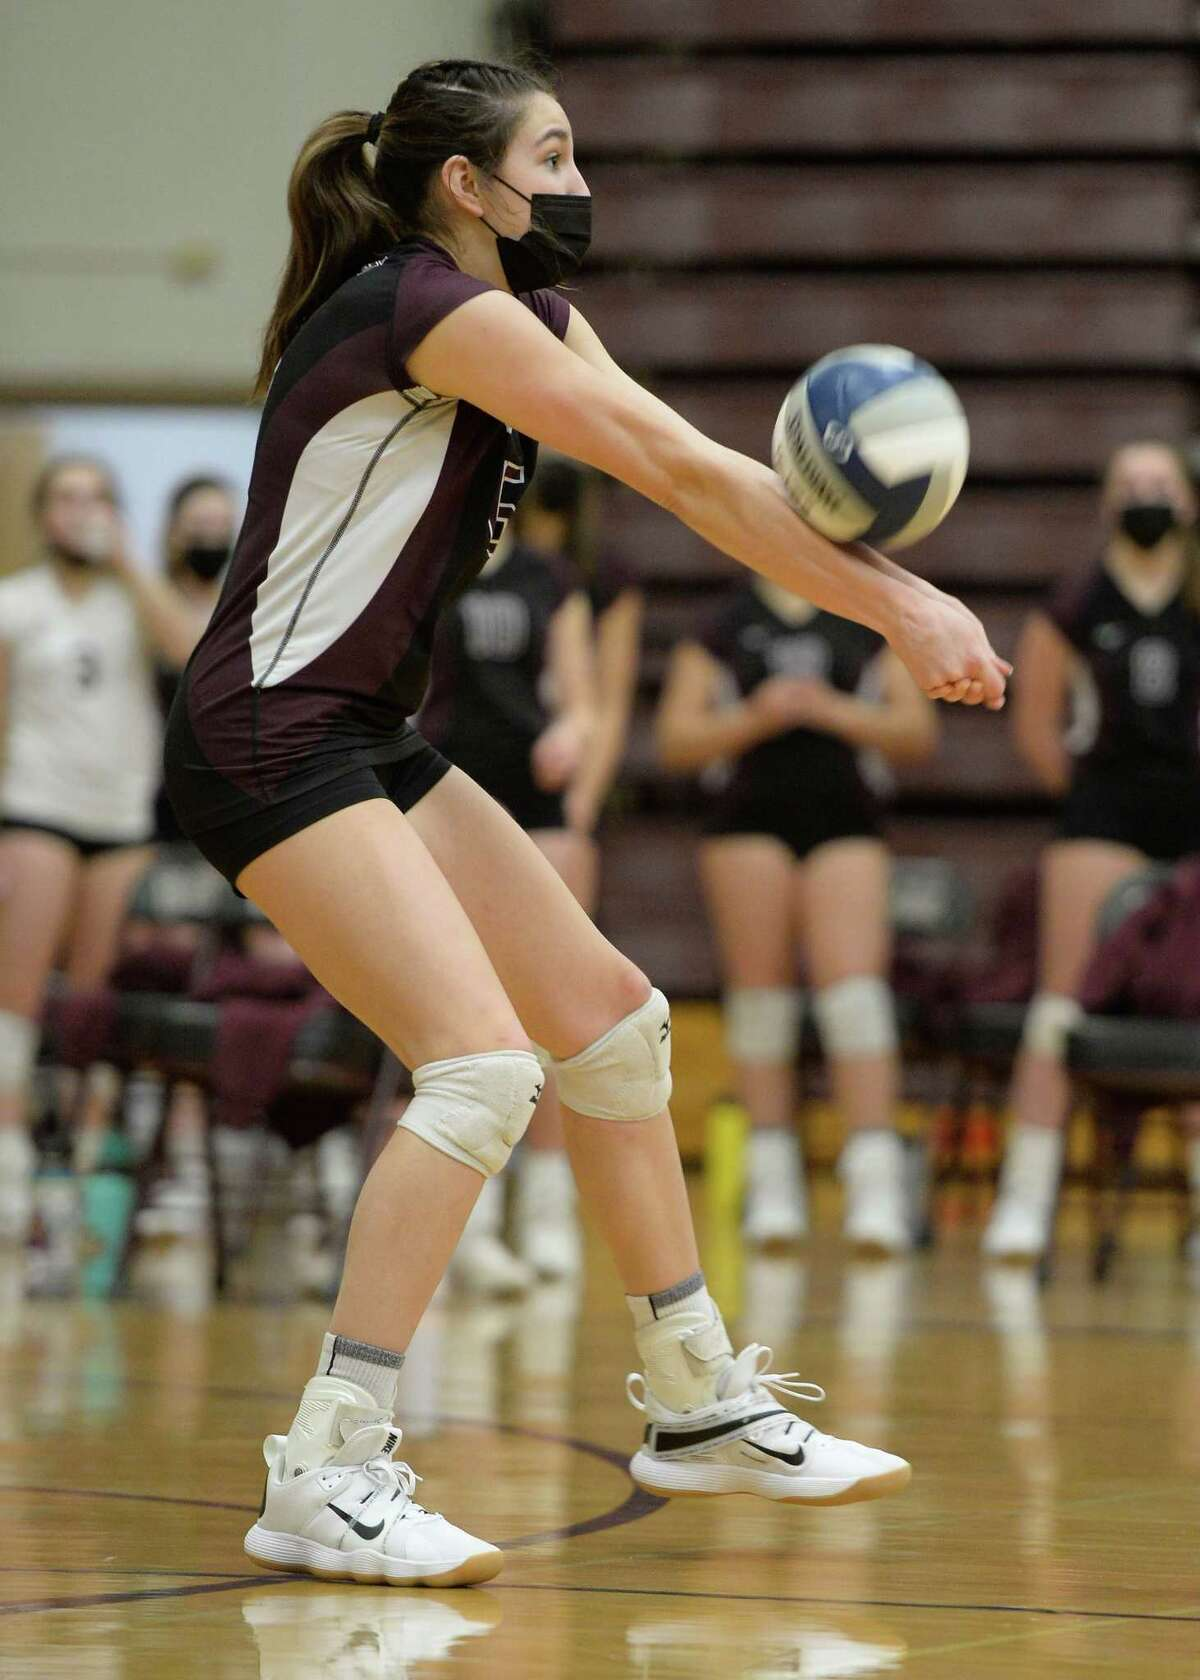 Burnt Hills'Callie Chevalier bumps the ball during a match in March. Volleyball players might have to wear masks this season, Section II Executive Director Ed Dopp said.